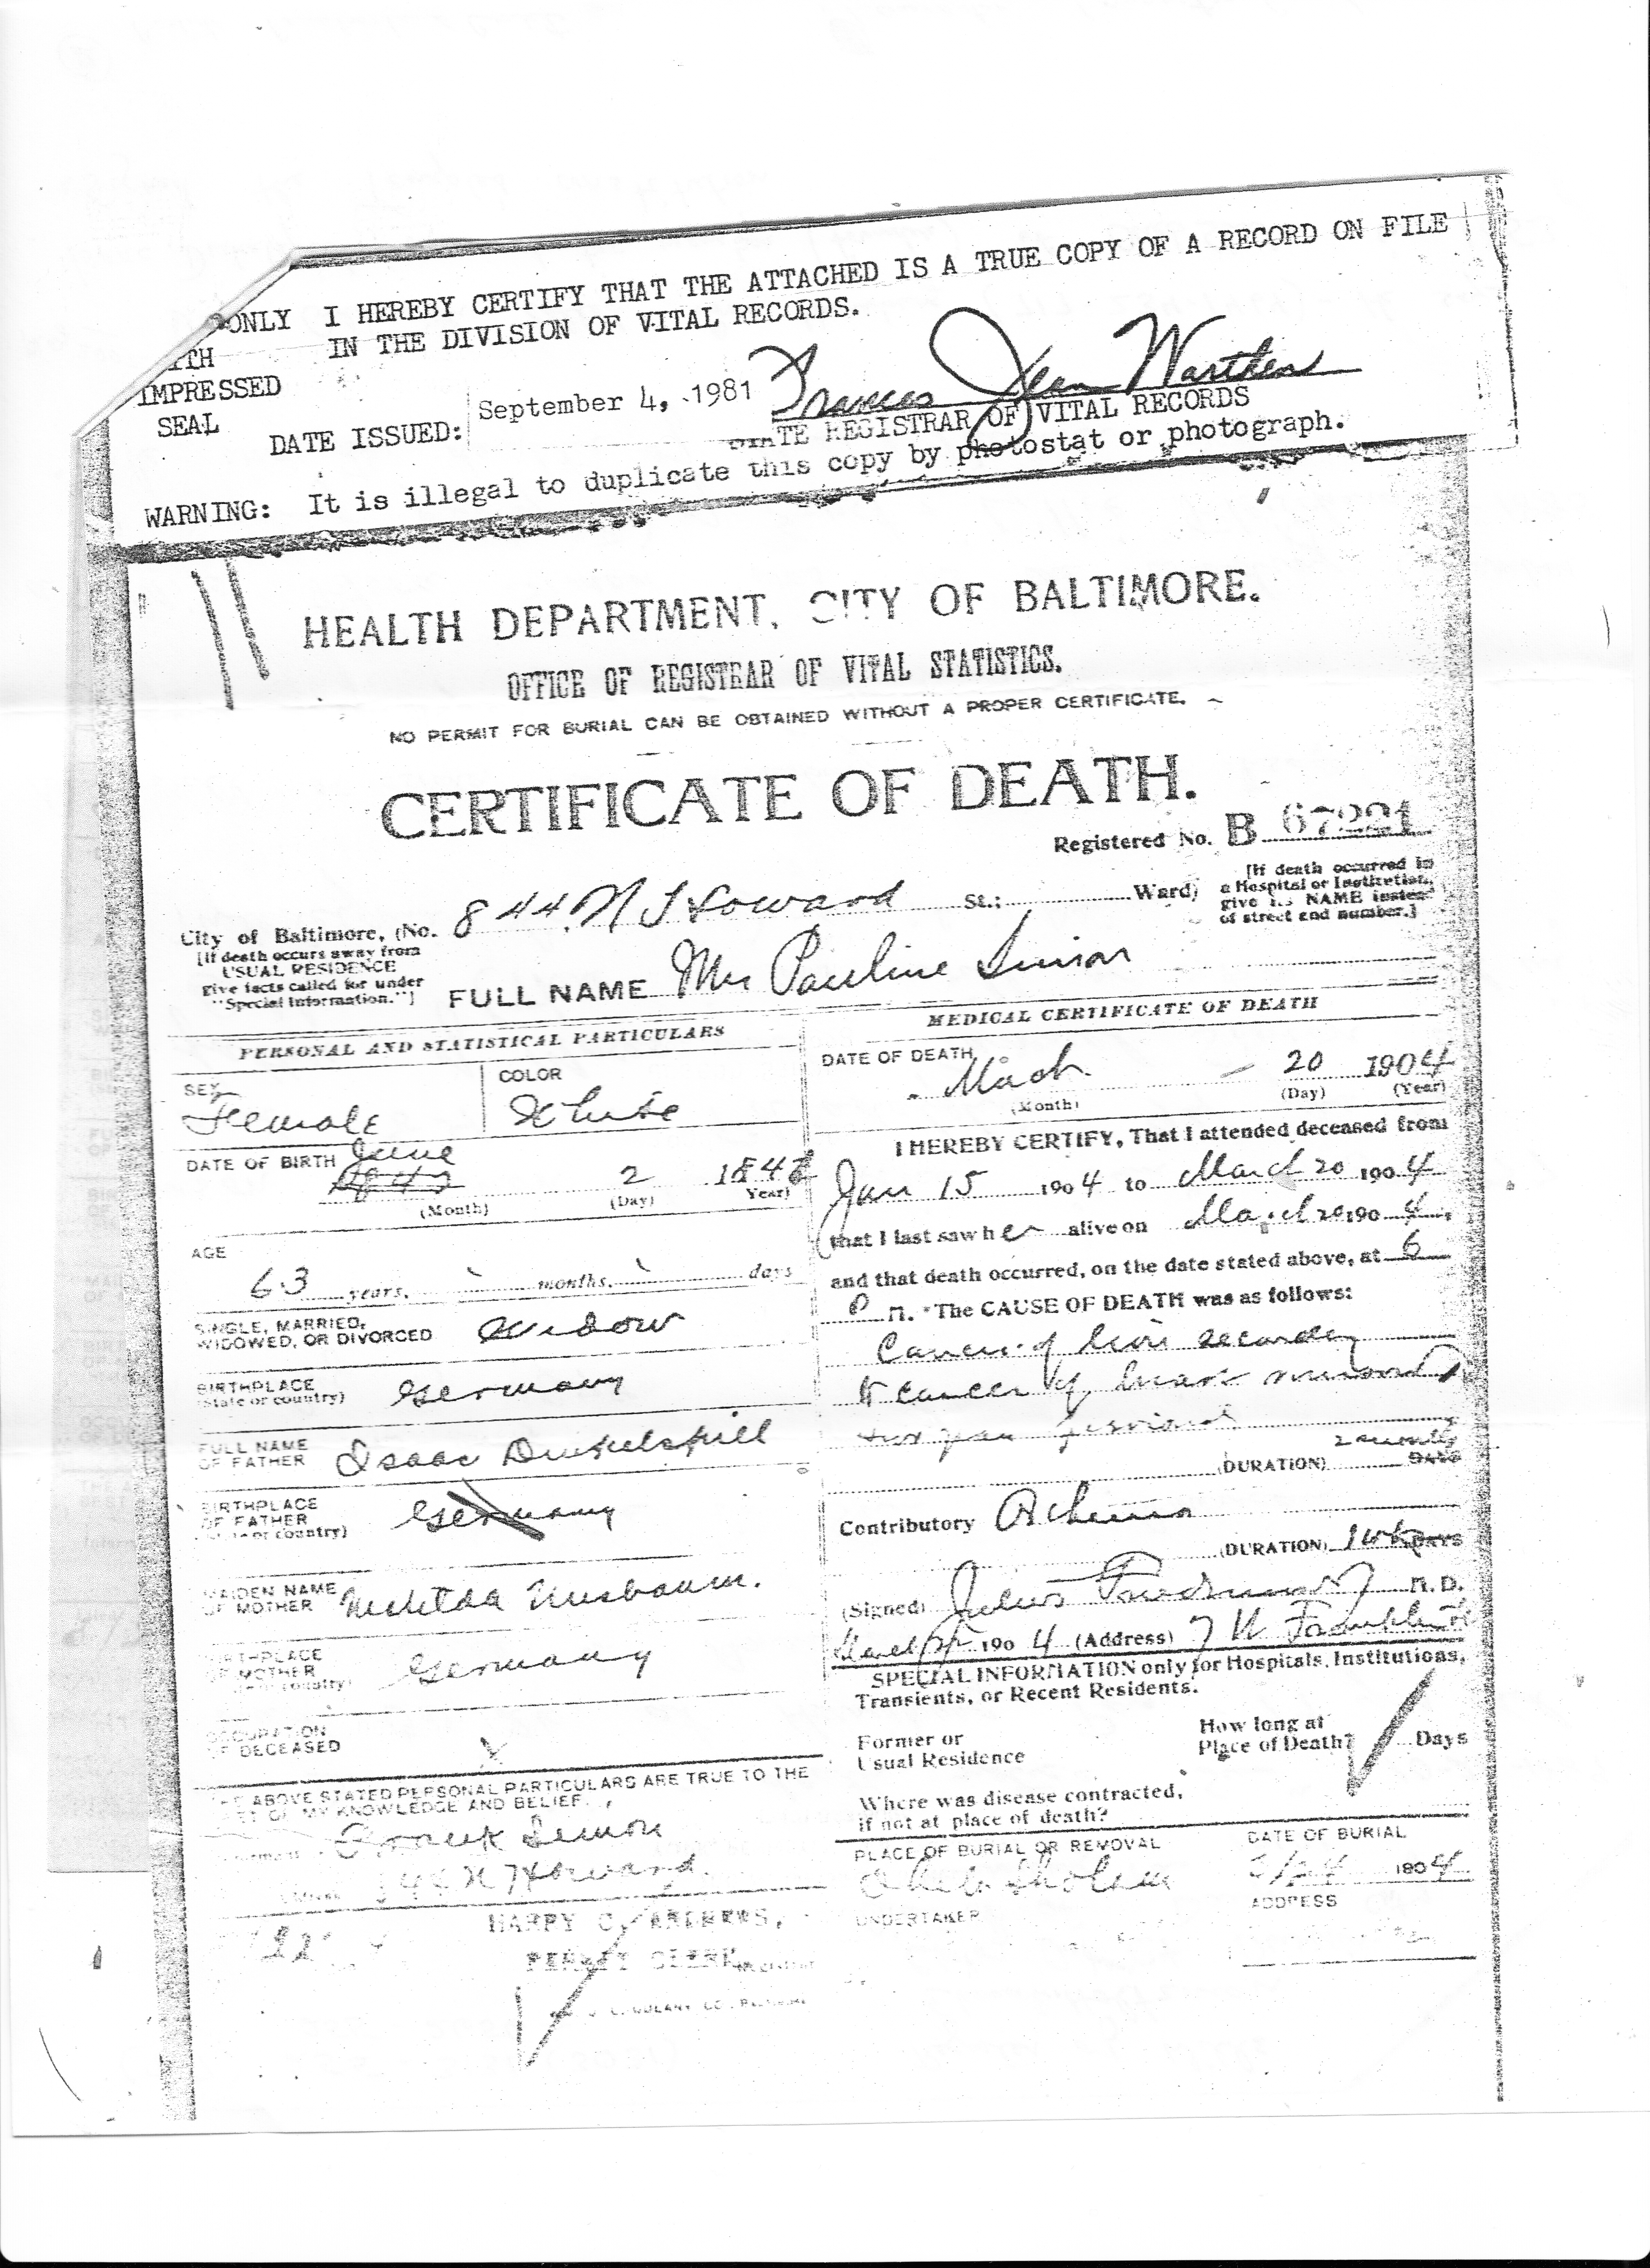 Dinkelspiel brotmanblog a family journey paulina dinkelspiel simon death certificate 1betcityfo Images